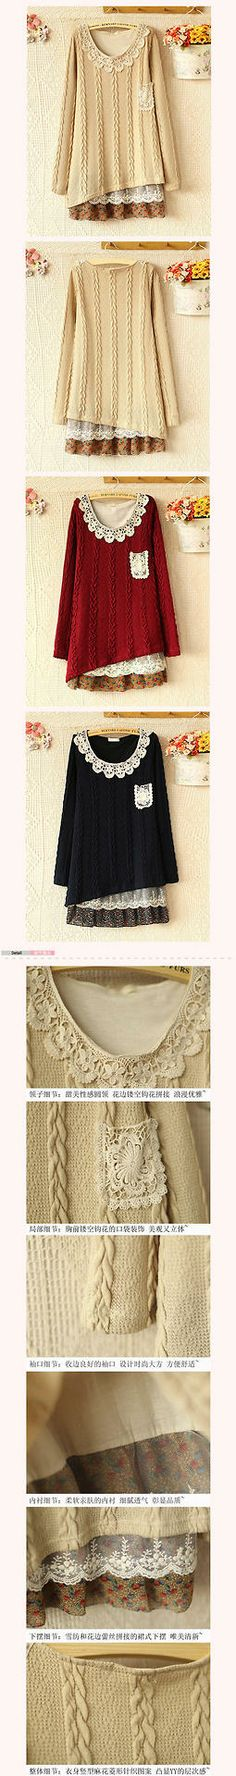 A Swedish Mori Girl - add lace and material under a long sweater. Mori Girl Fashion, Diy Fashion, Diy Clothing, Sewing Clothes, Alter Pullover, Altered Couture, Altering Clothes, Long Sweaters, Big Sweater